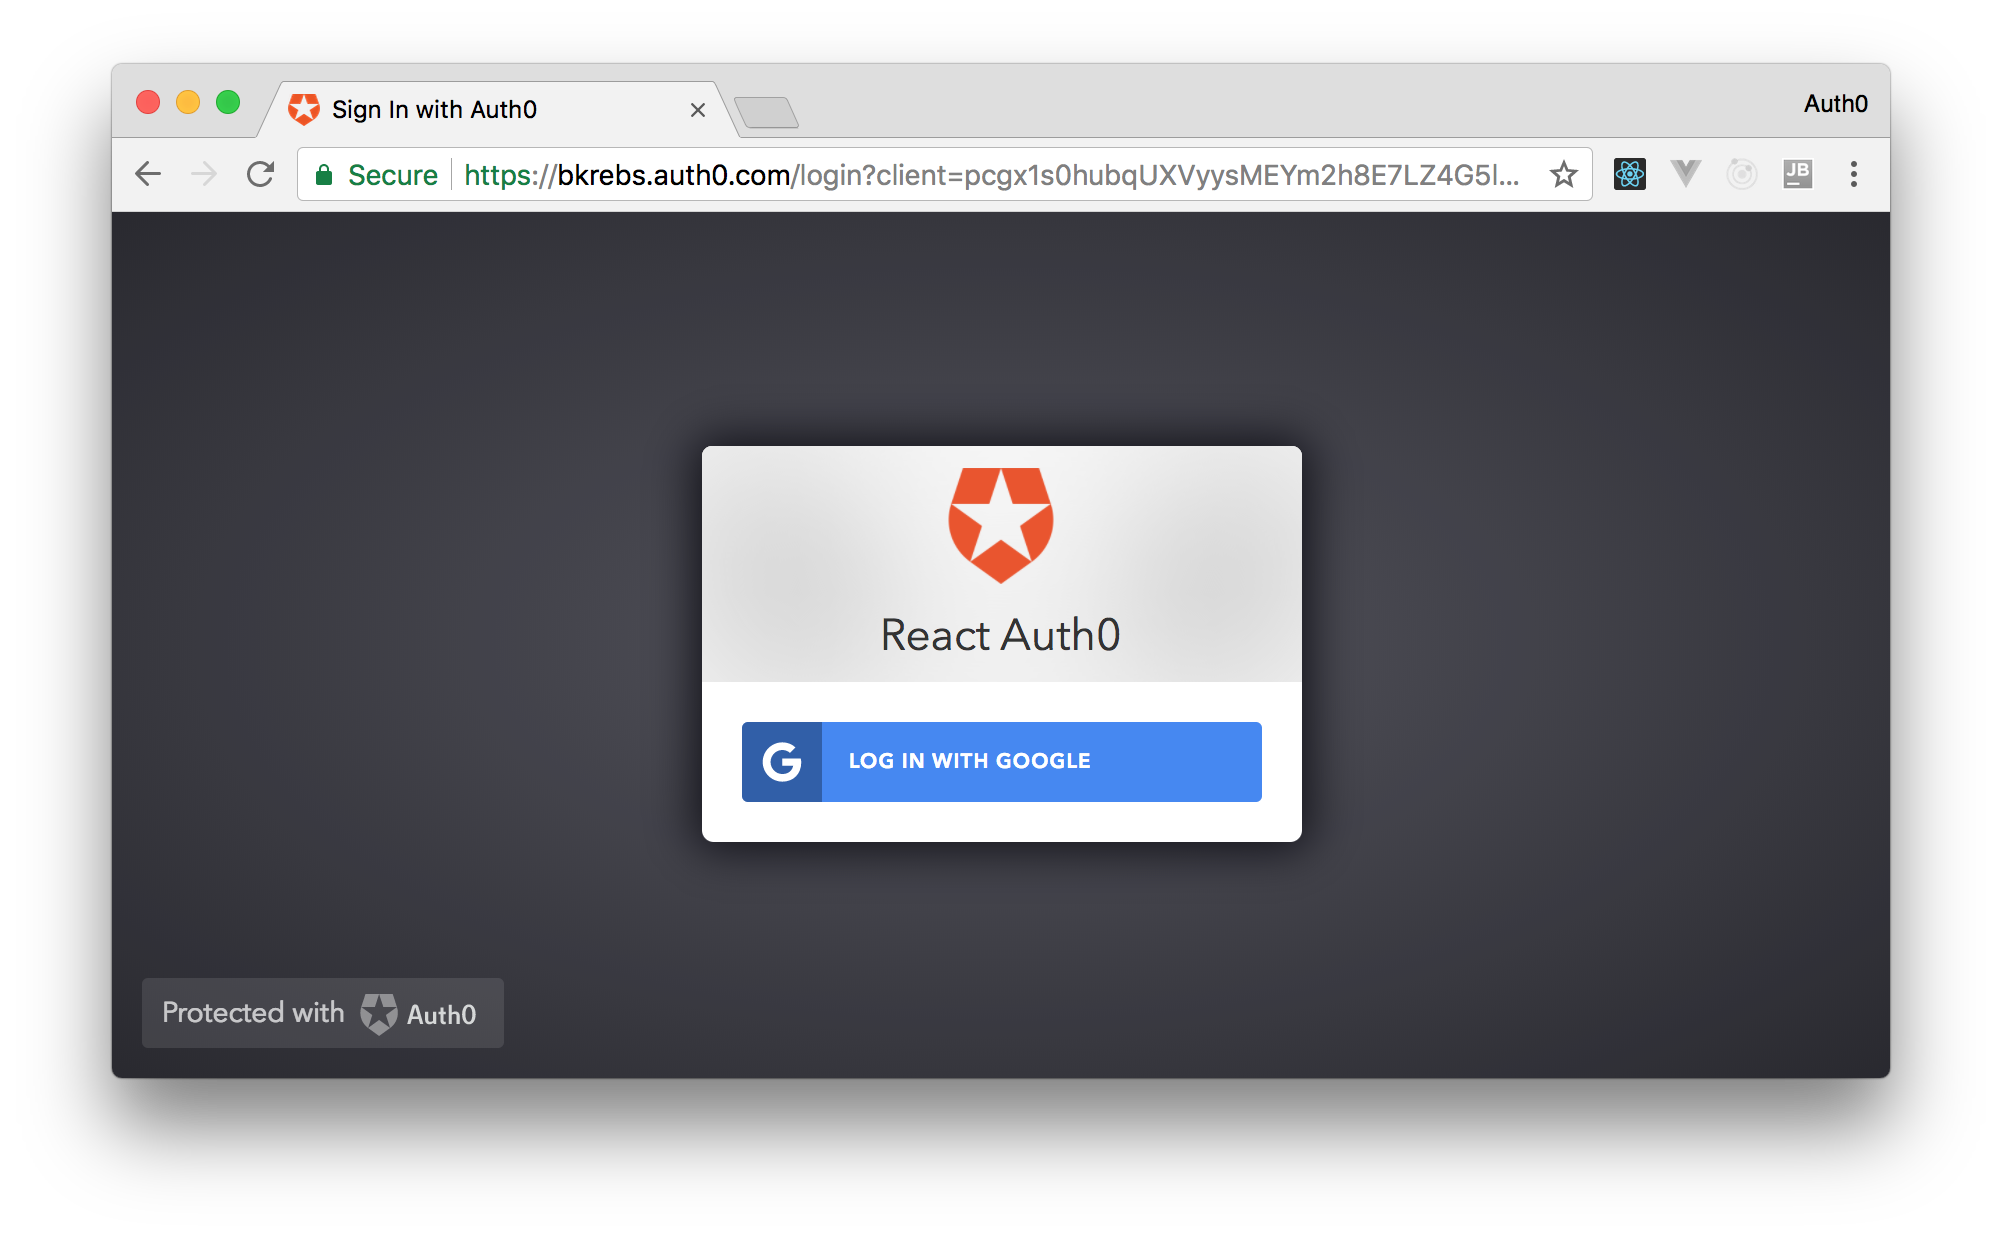 The Auth0 hosted login page for a React app.